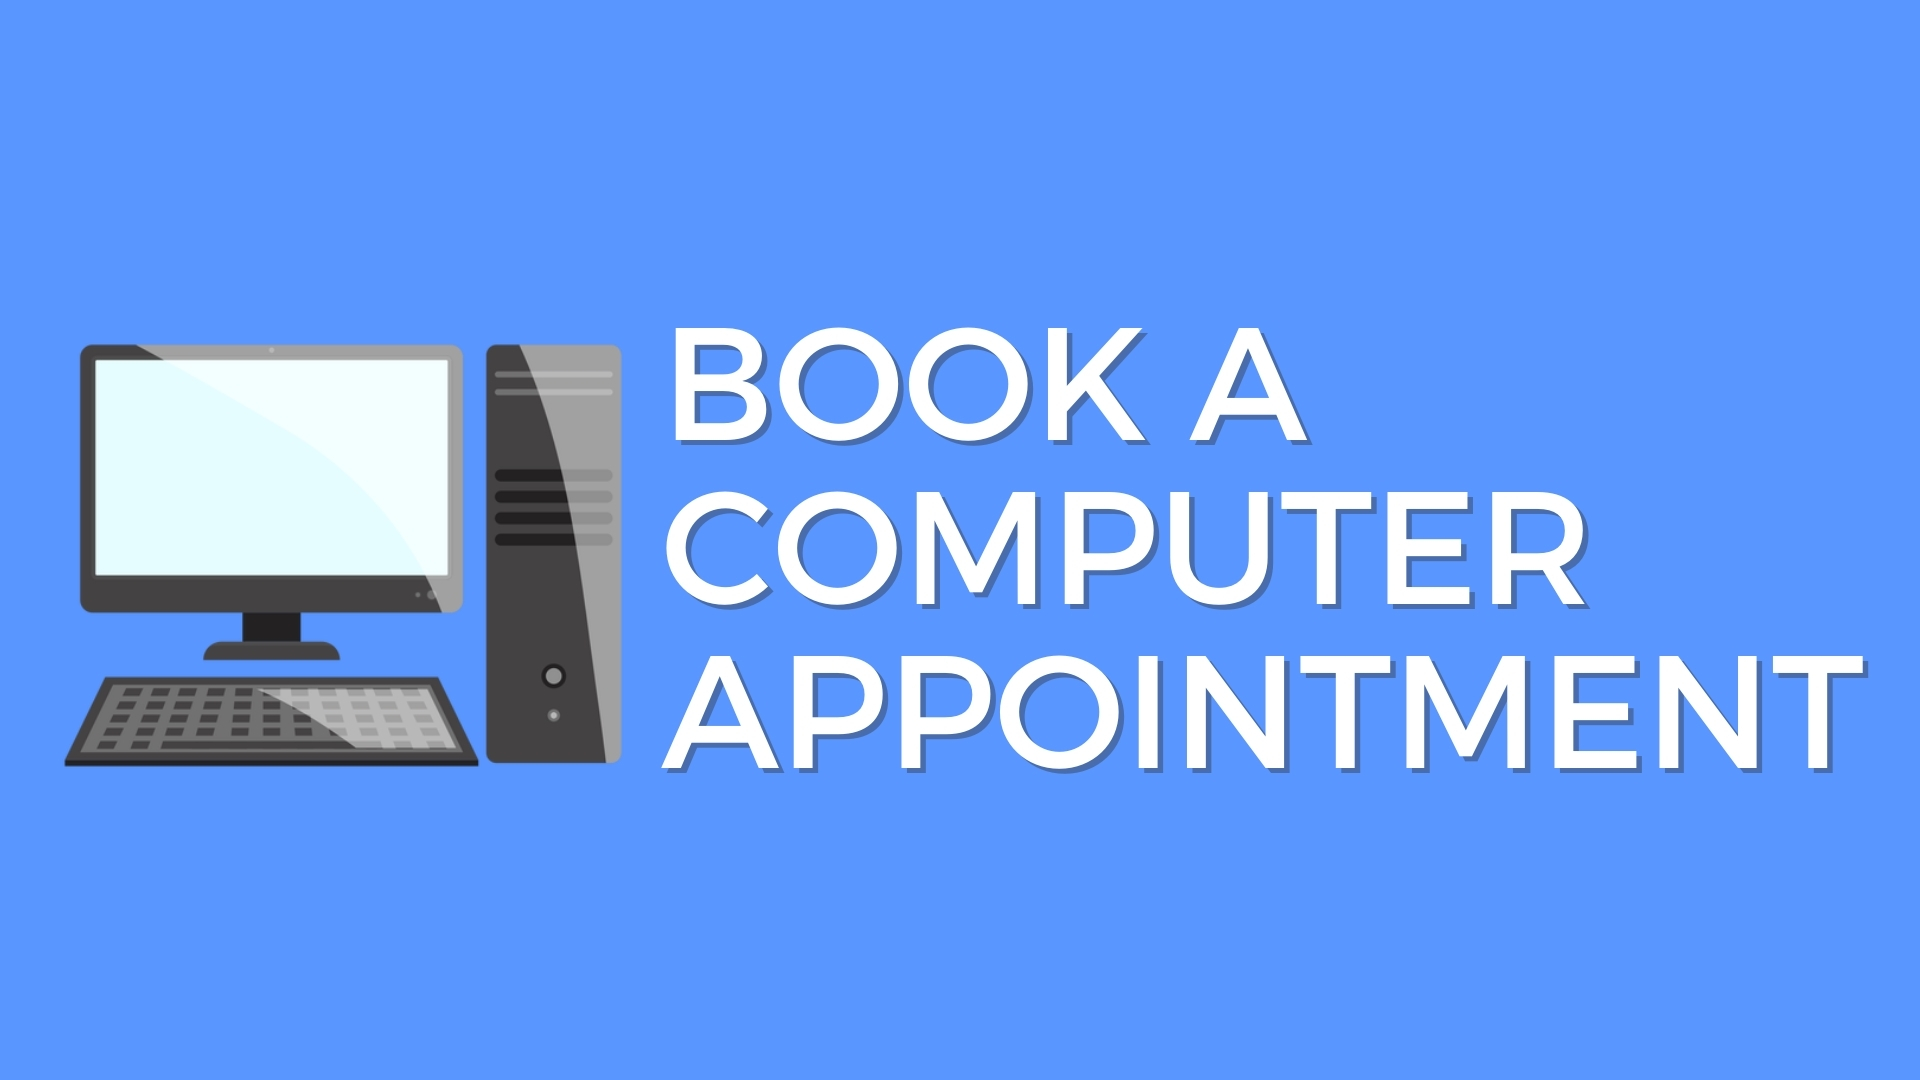 Book a Computer Appointment